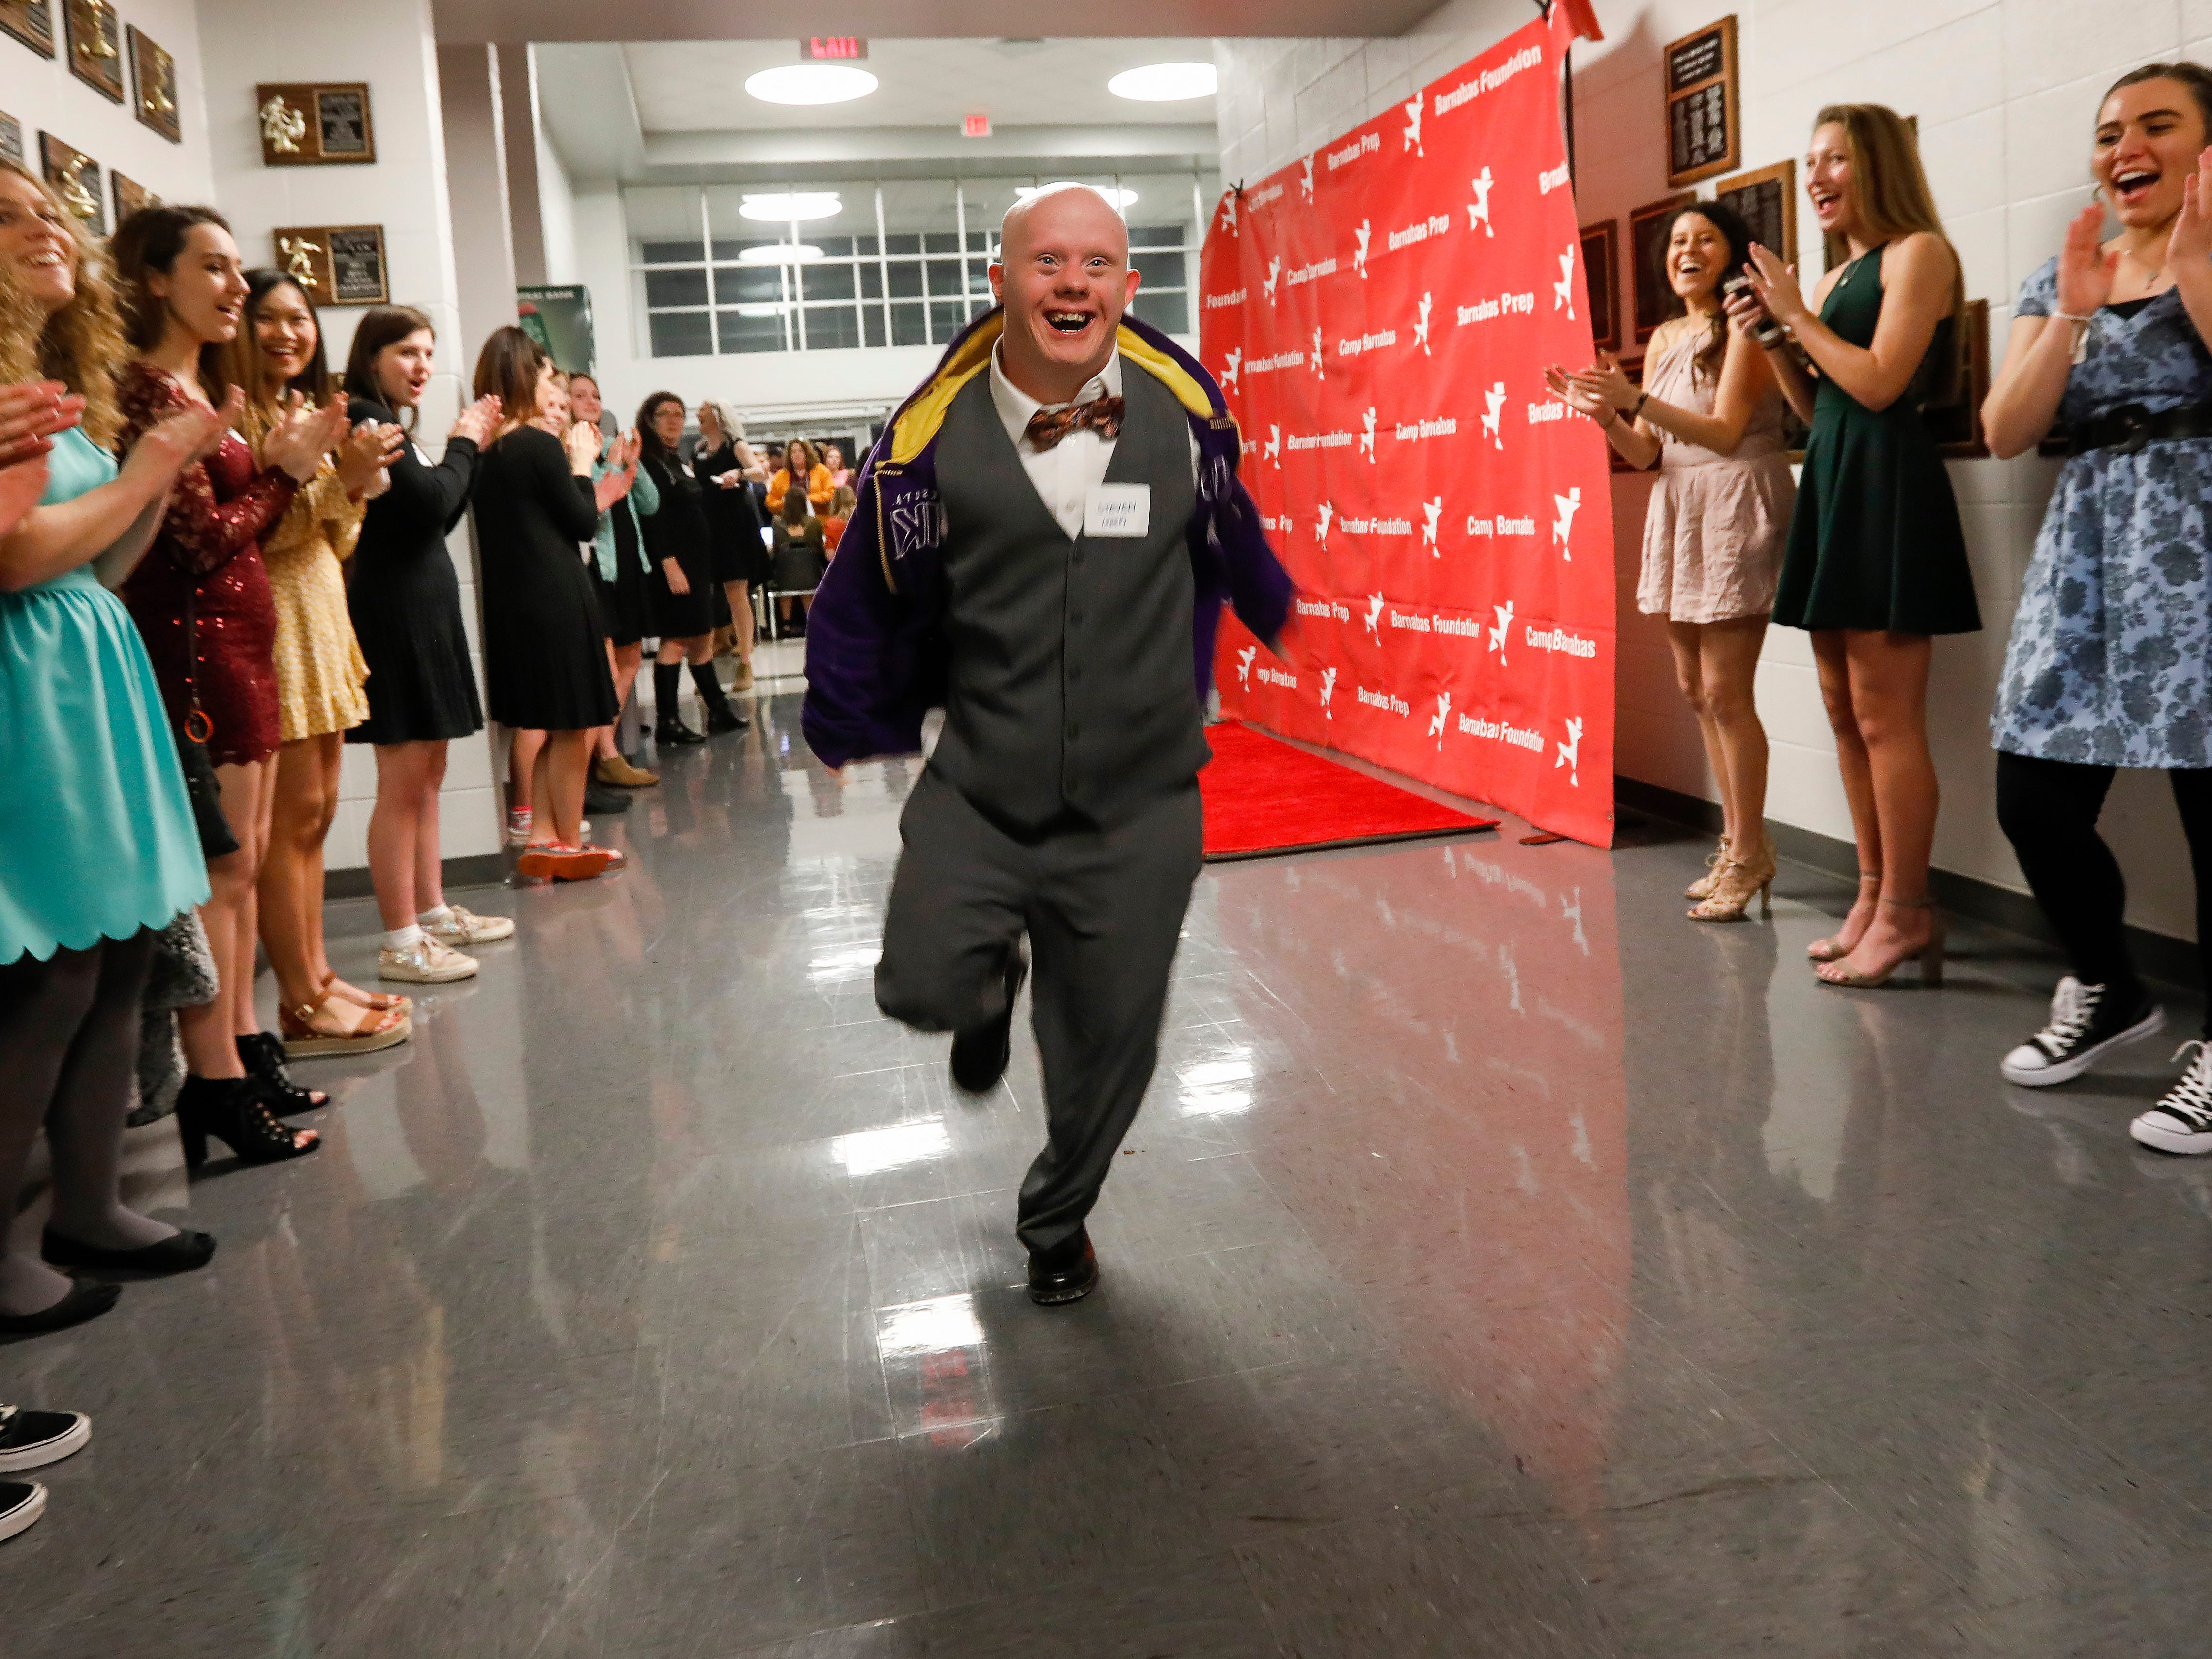 Steven smiles as he sprints down the red carpet at the Camp Barnabas Snow Ball at Springfield Catholic High School on Saturday, Jan. 26, 2019.